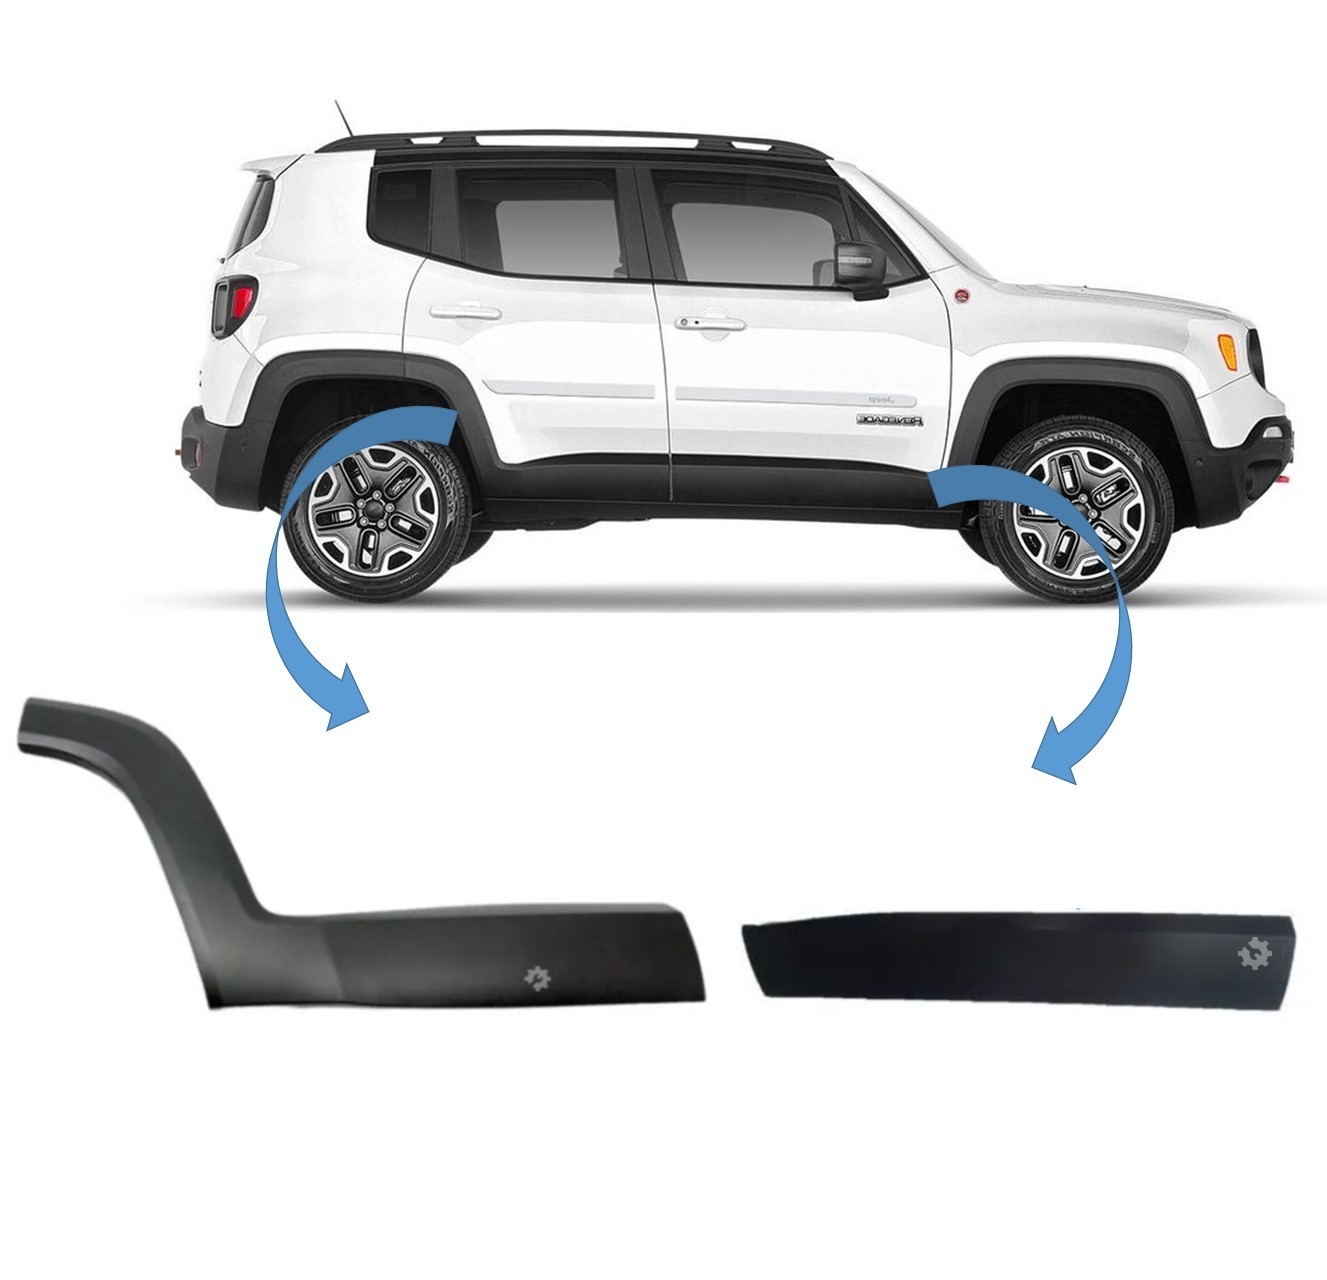 Kit Moldura Lateral Direito Jeep Renegade 2015 2019 Original